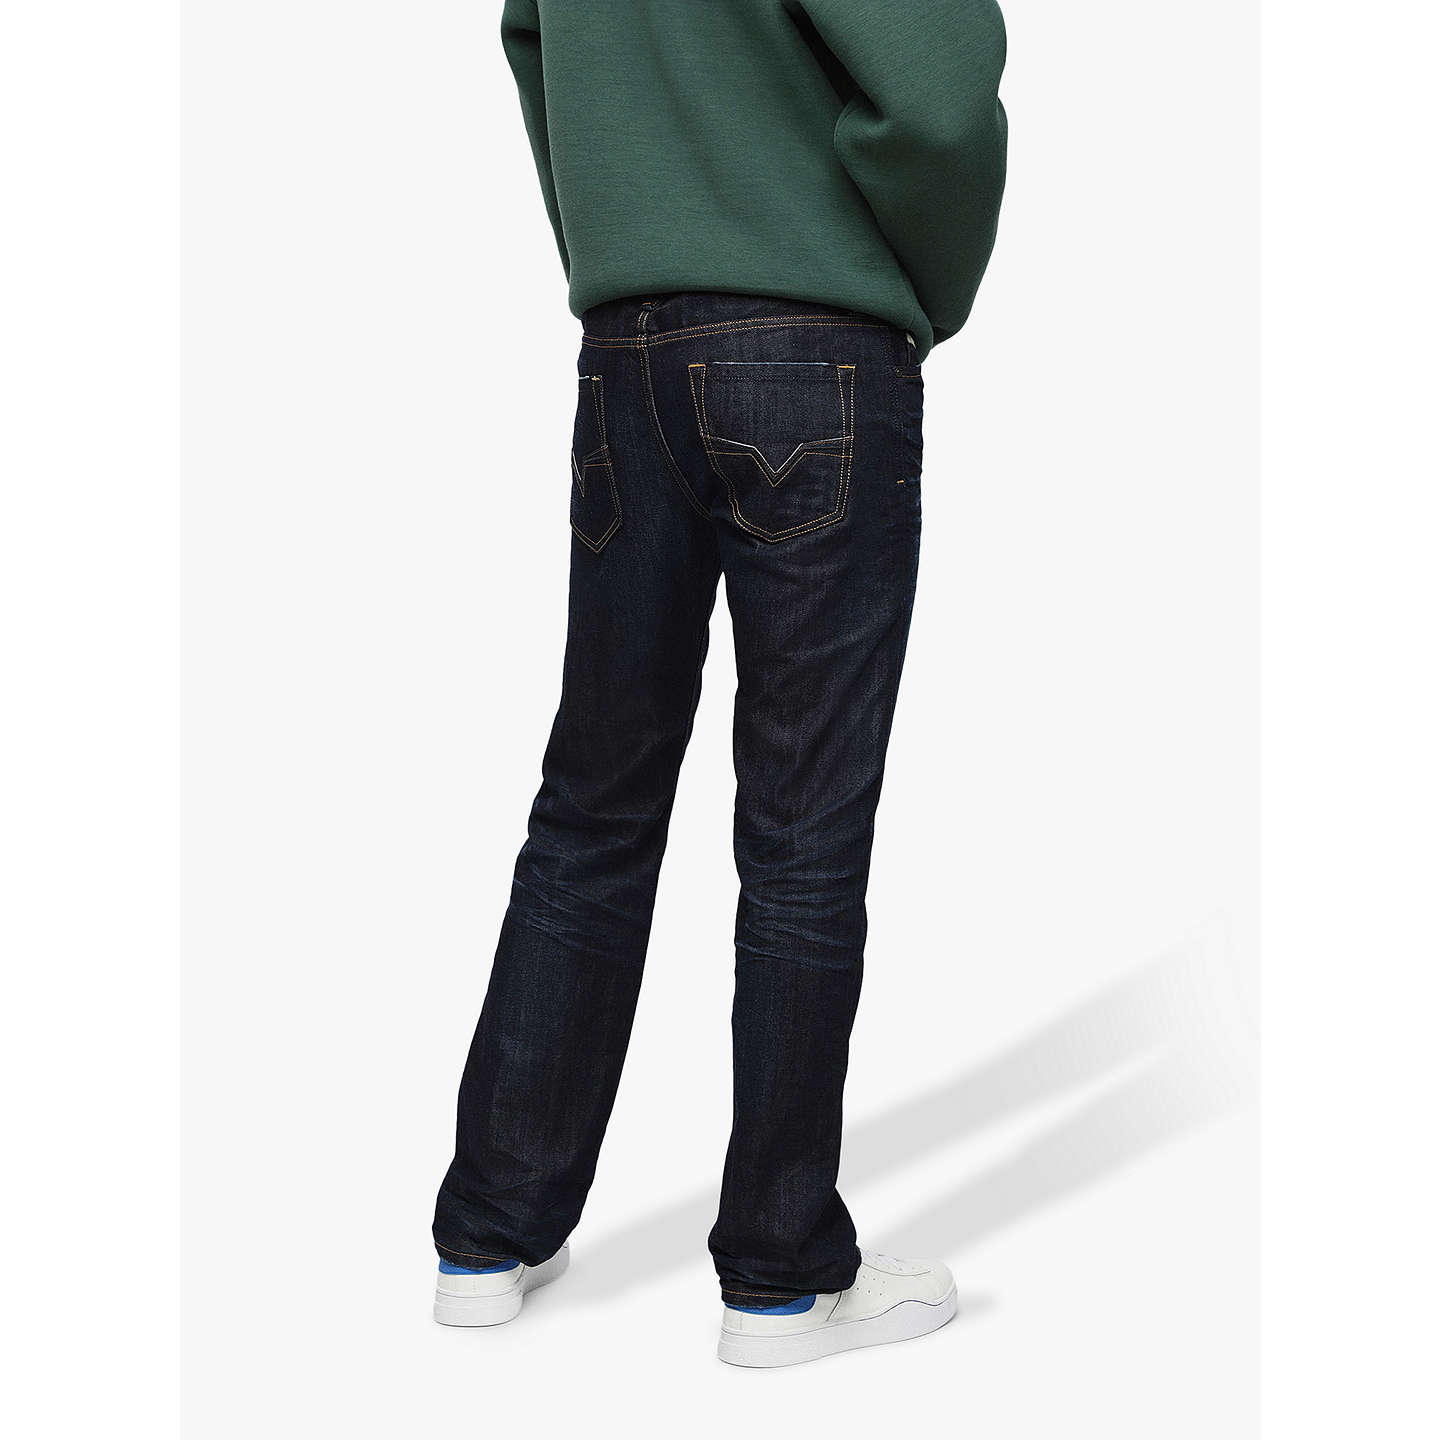 BuyDiesel Larkee Straight Jeans, Mid Wash 806W, 32S Online at johnlewis.com  ...